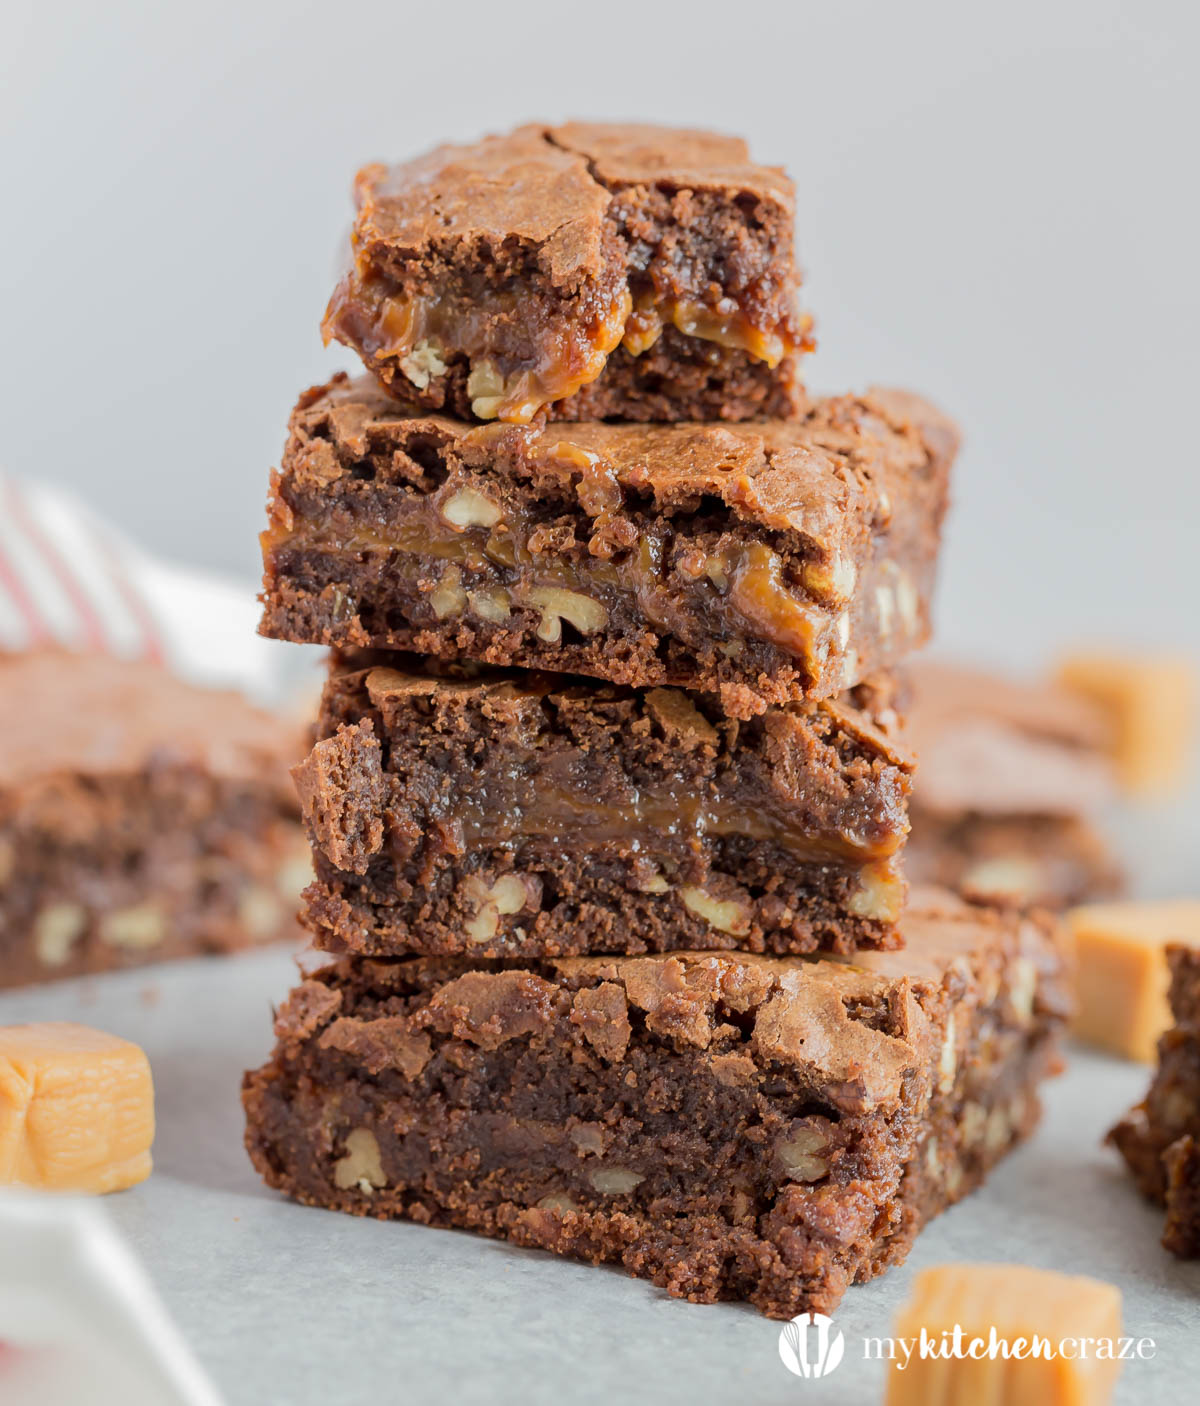 Caramel Pecan Brownies are soft, chewy, chocolate-y with caramel and pecans. These take regular brownies to the next level!